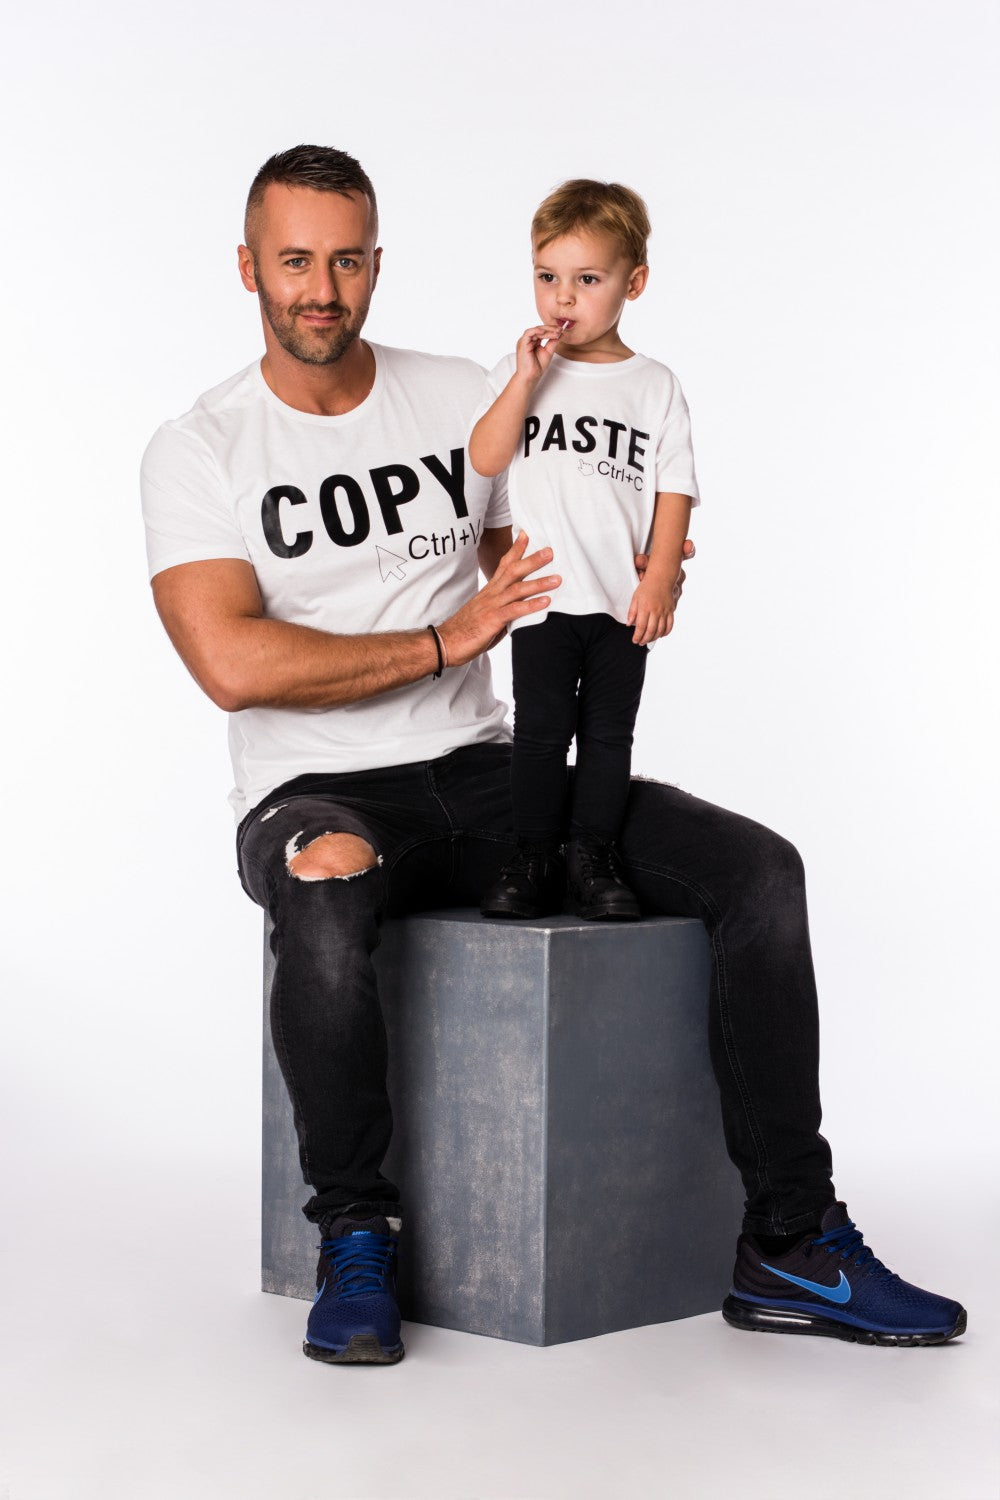 The Copy Paste T-shirt Collection